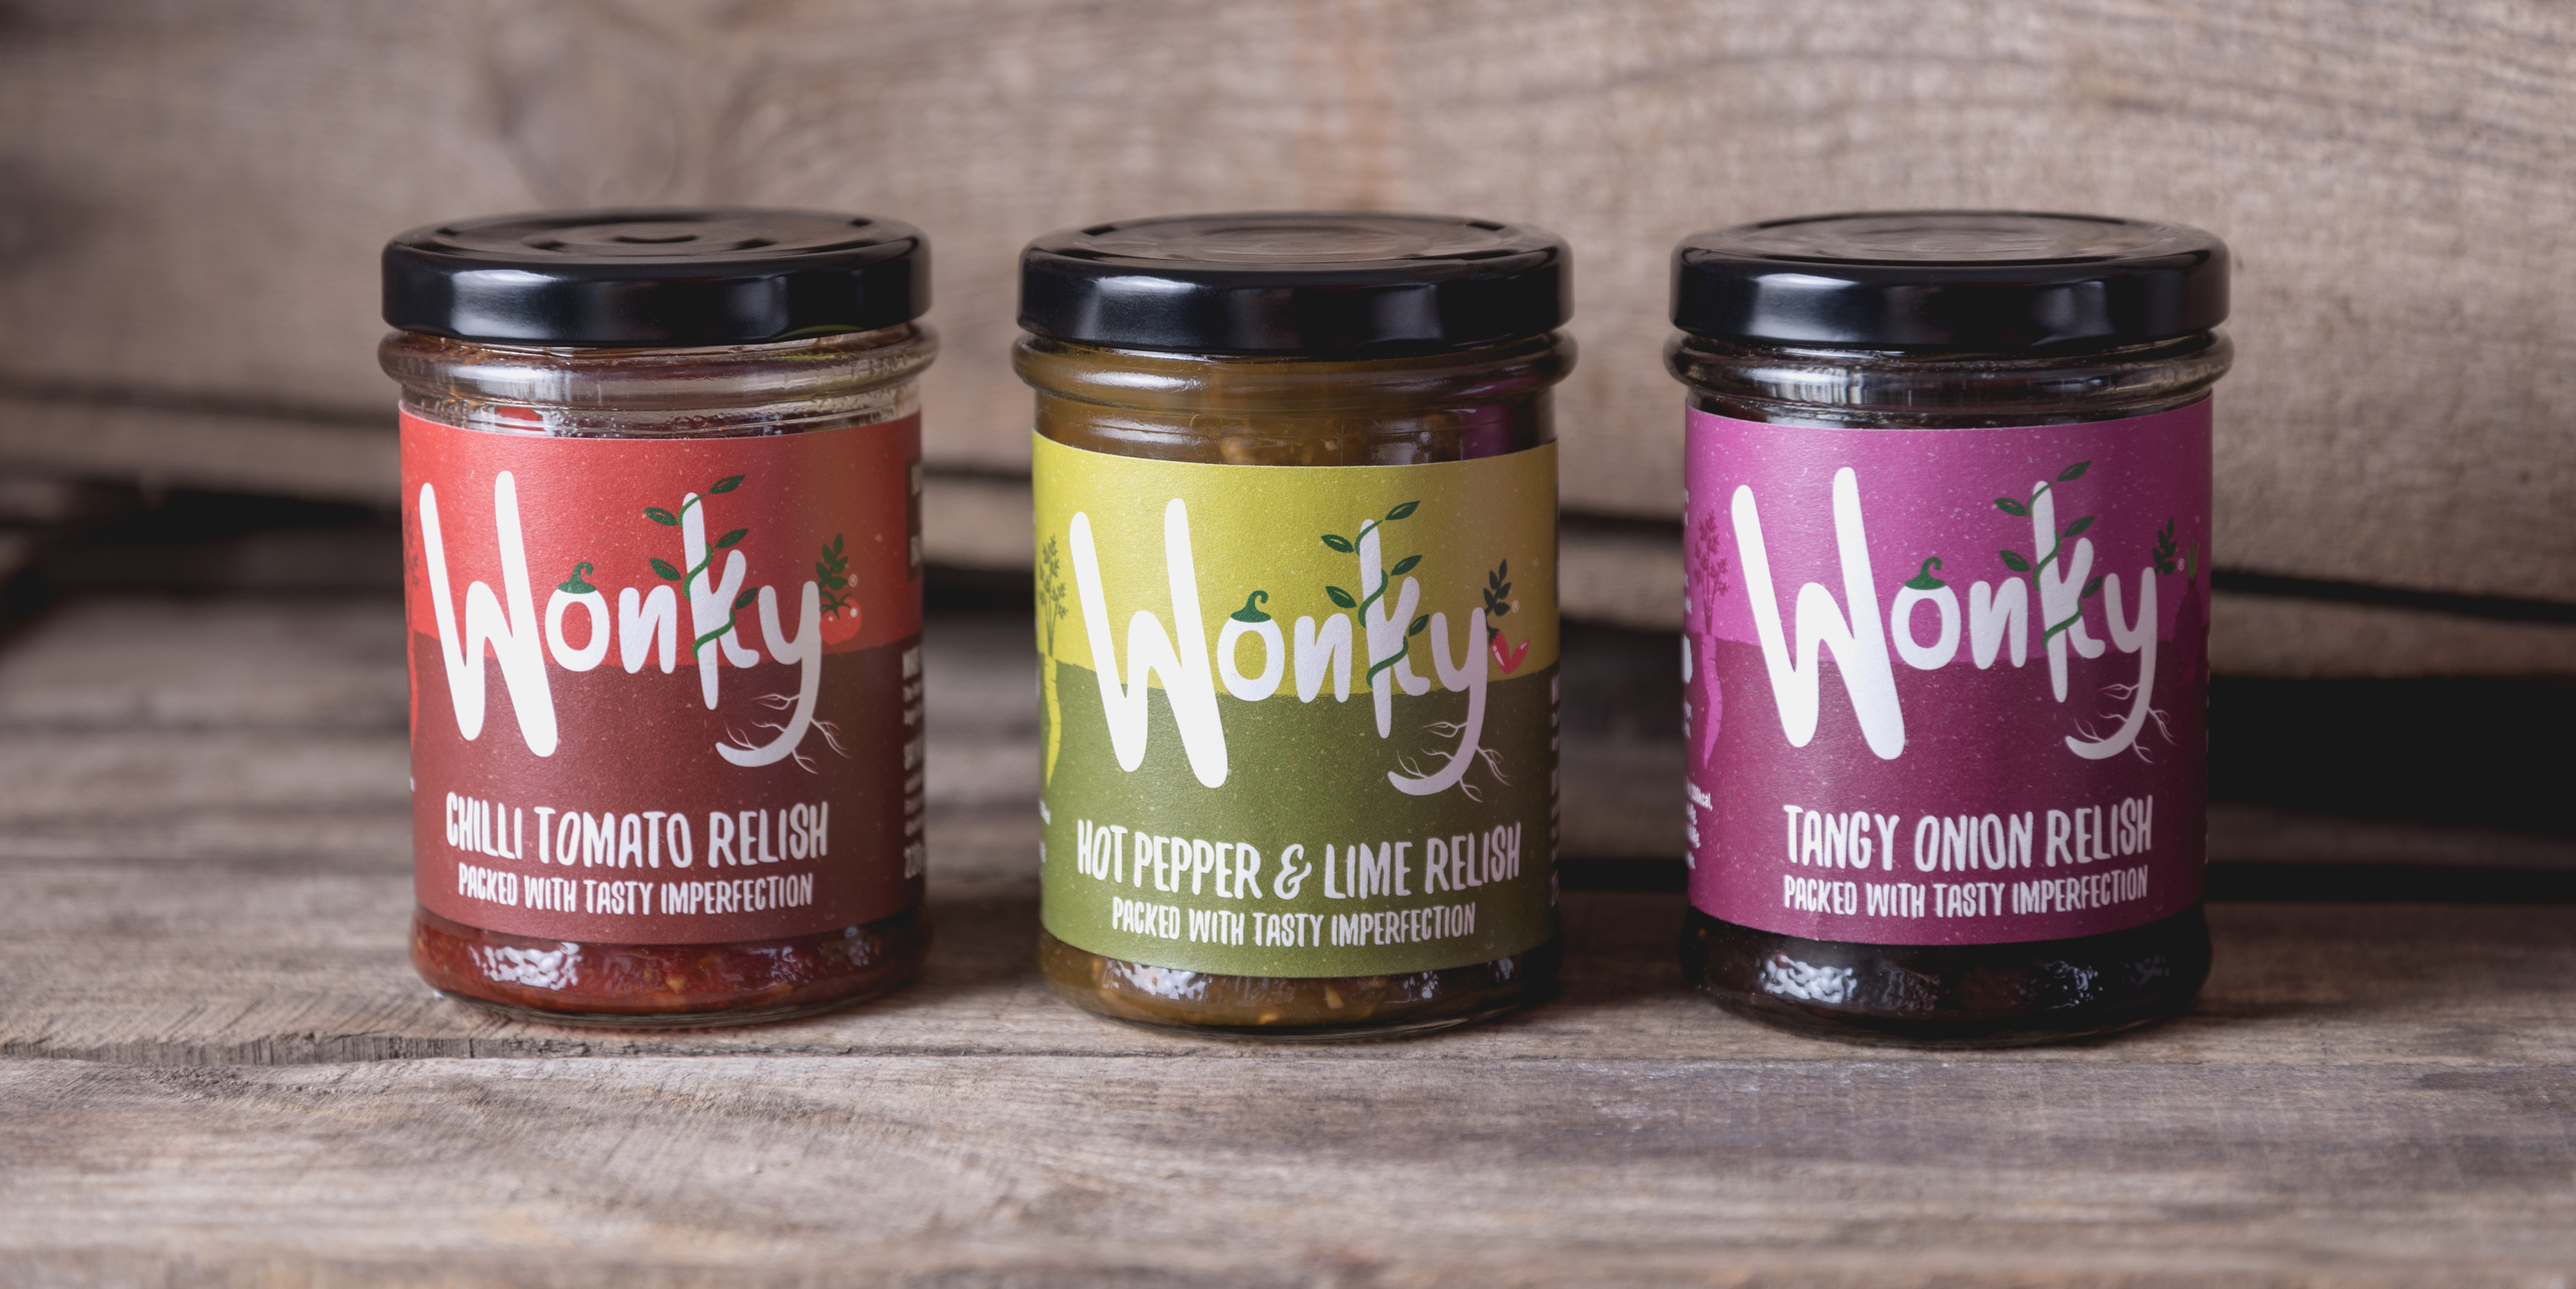 The Wonky Food Company Jars